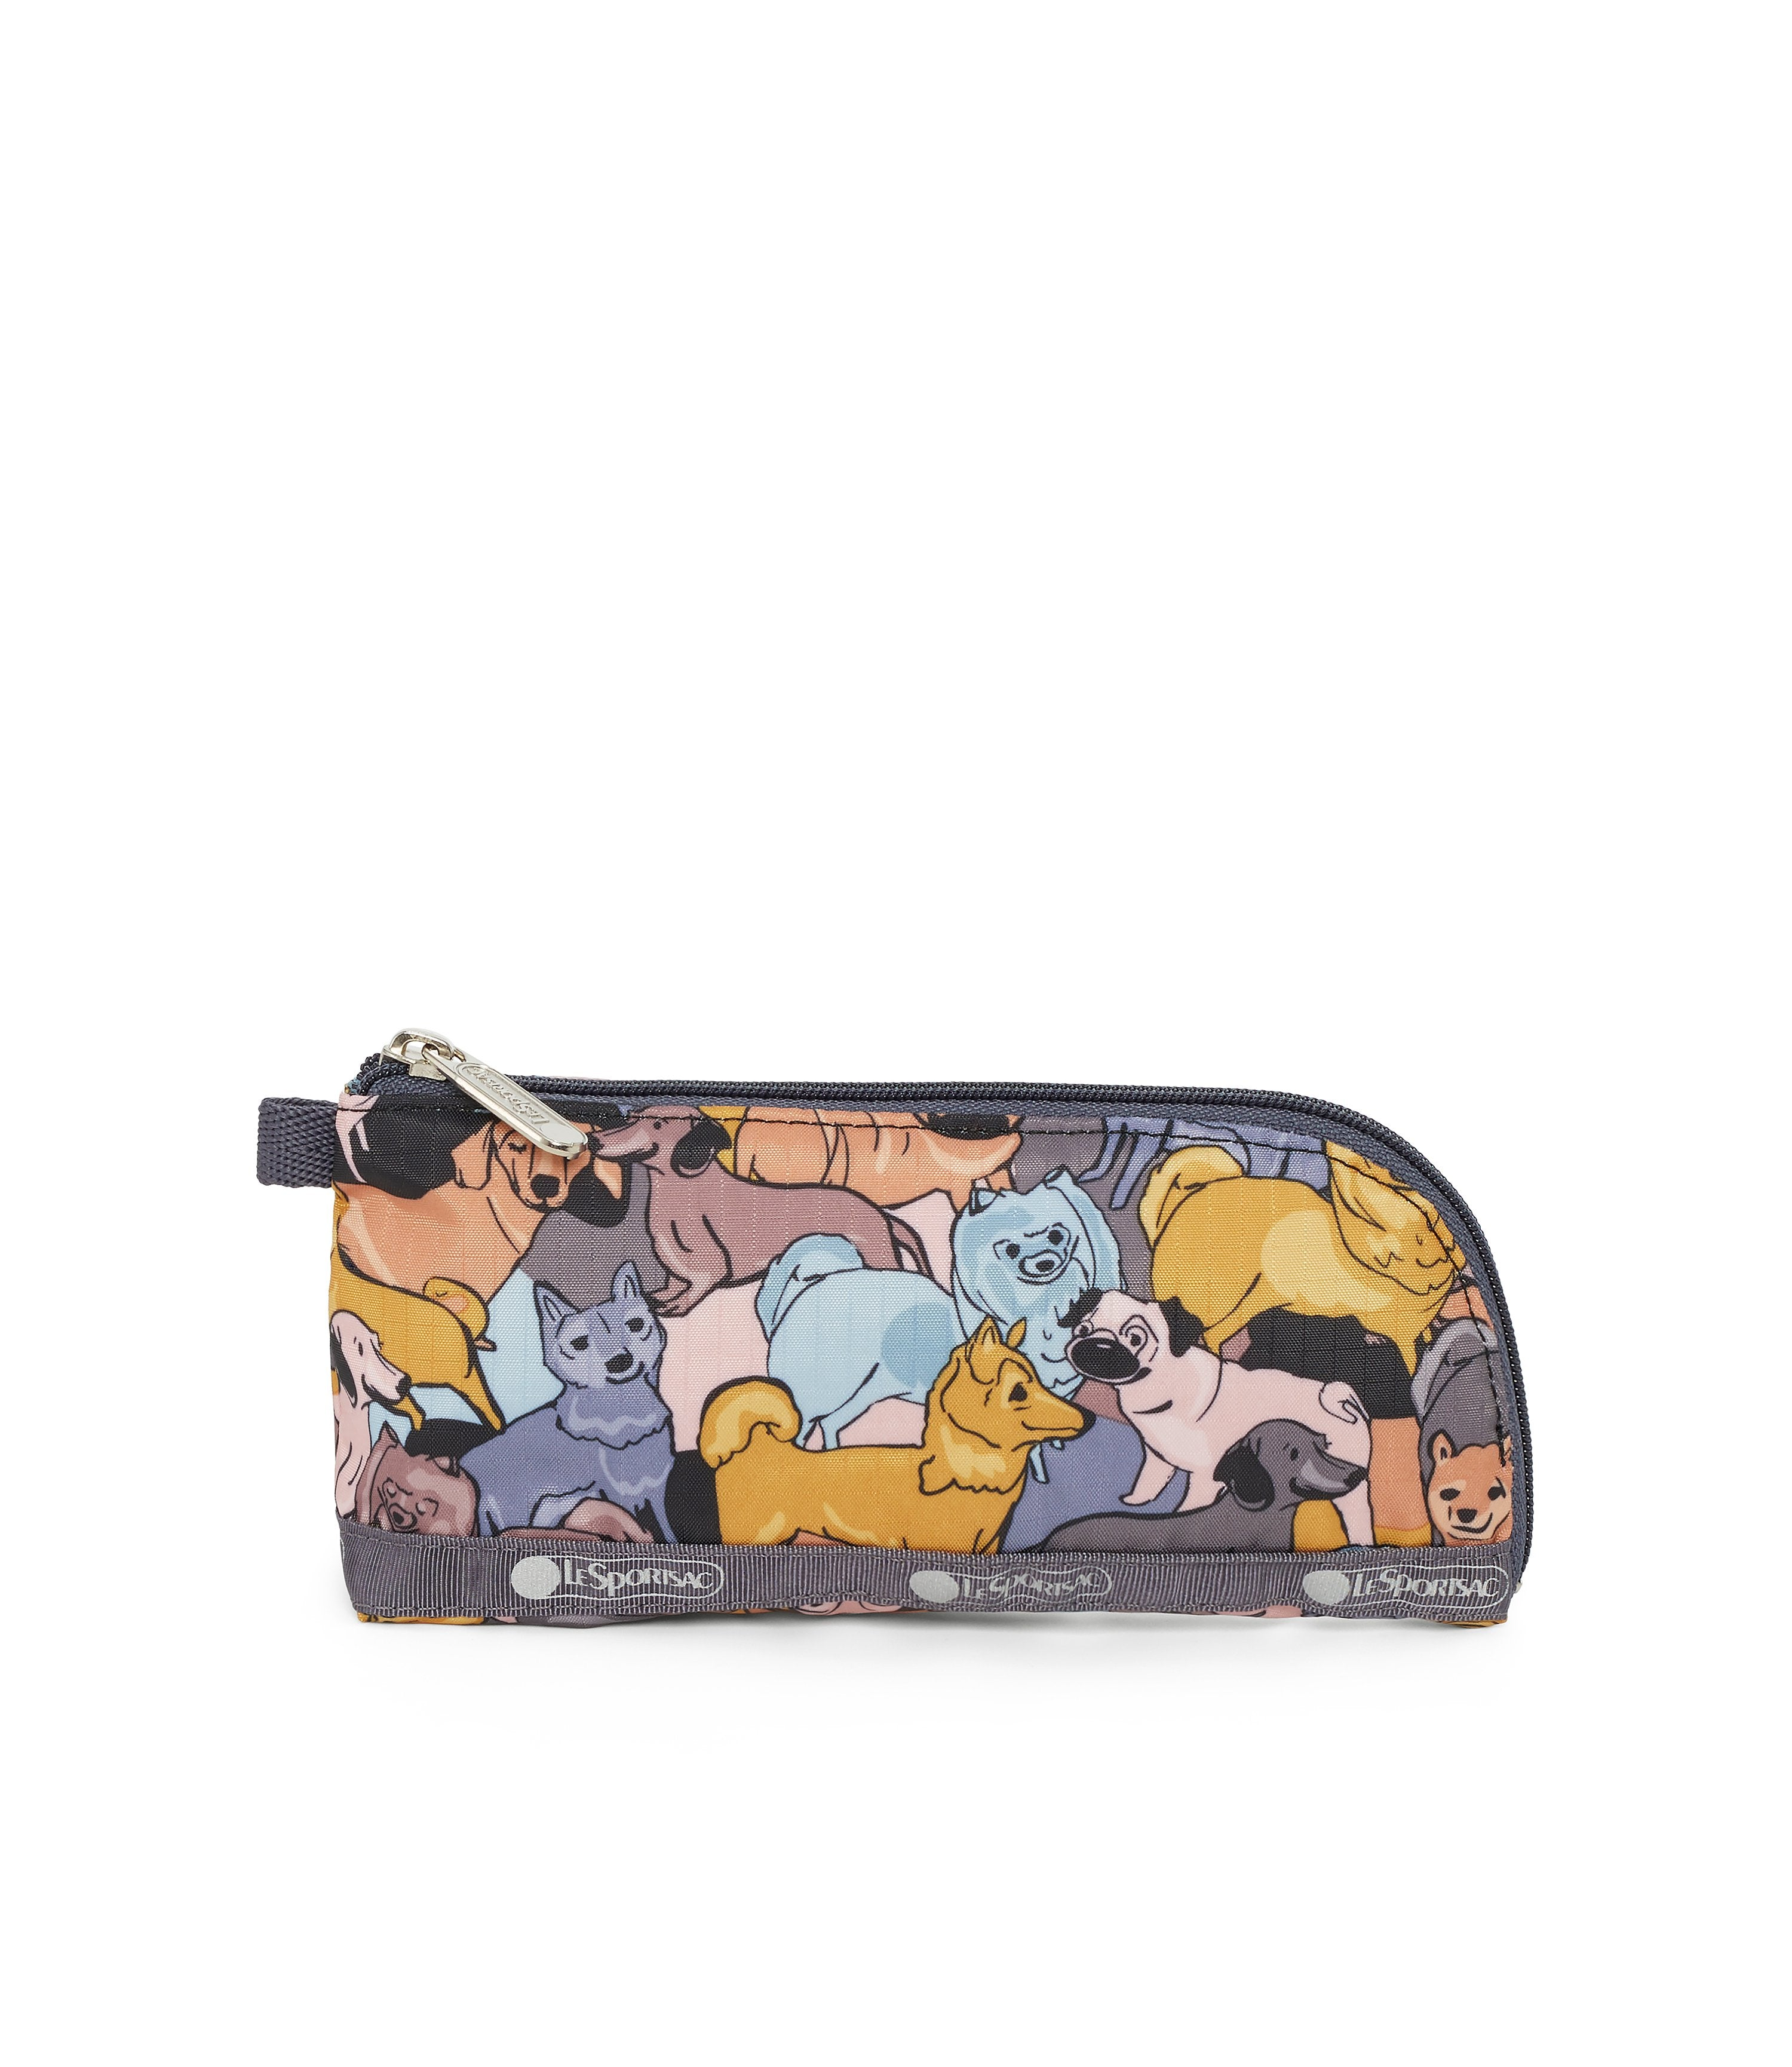 Everything Case, Accessories and Cosmetic Bag, LeSportsac, Kon and Friends print